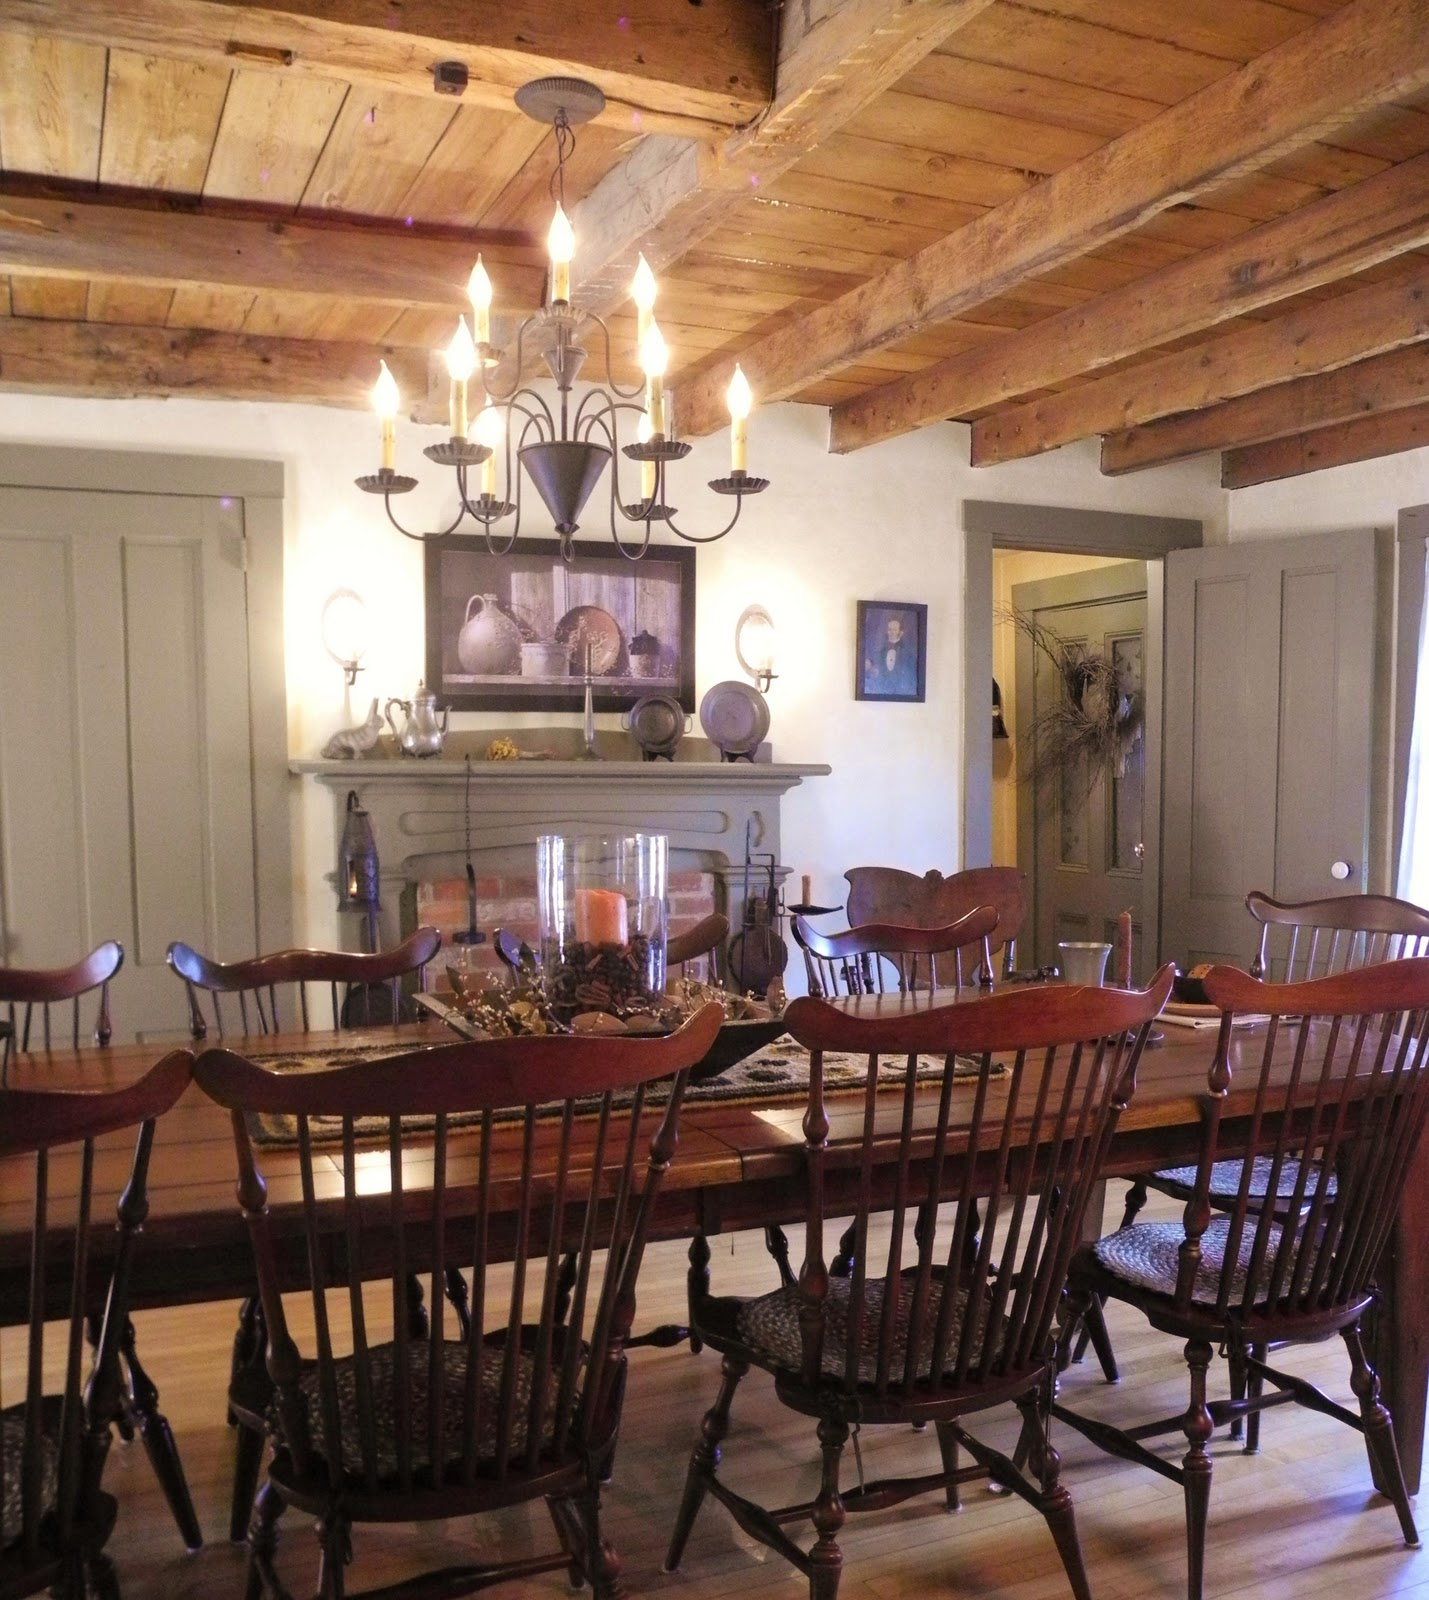 Colonial Dining Room Furniture: A Primitive Place & Country Journal Magazine: Spring 2012